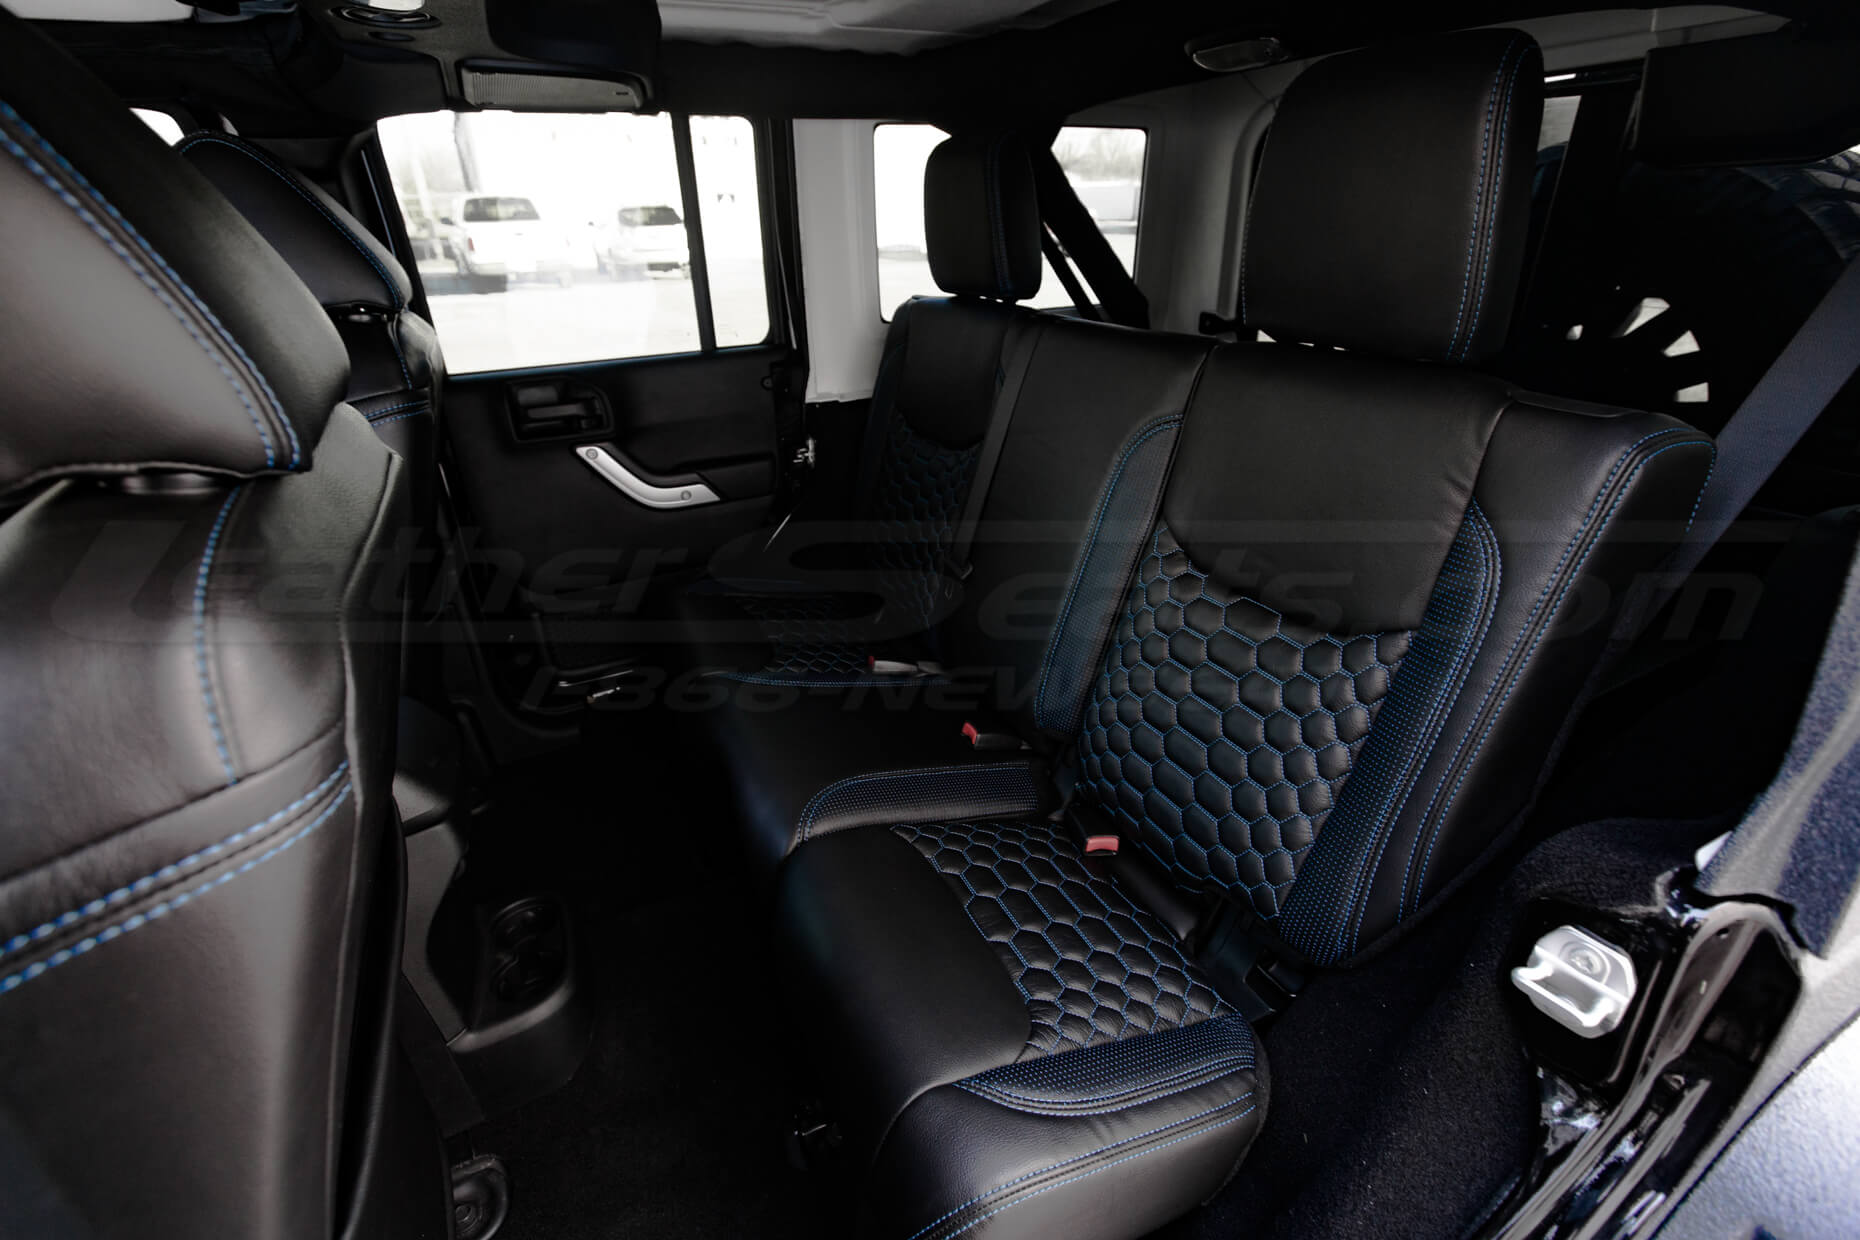 2013-2018 Jeep Wrangler Bespoked Leather Seats Installed- Black & Cobalt - Rear seats